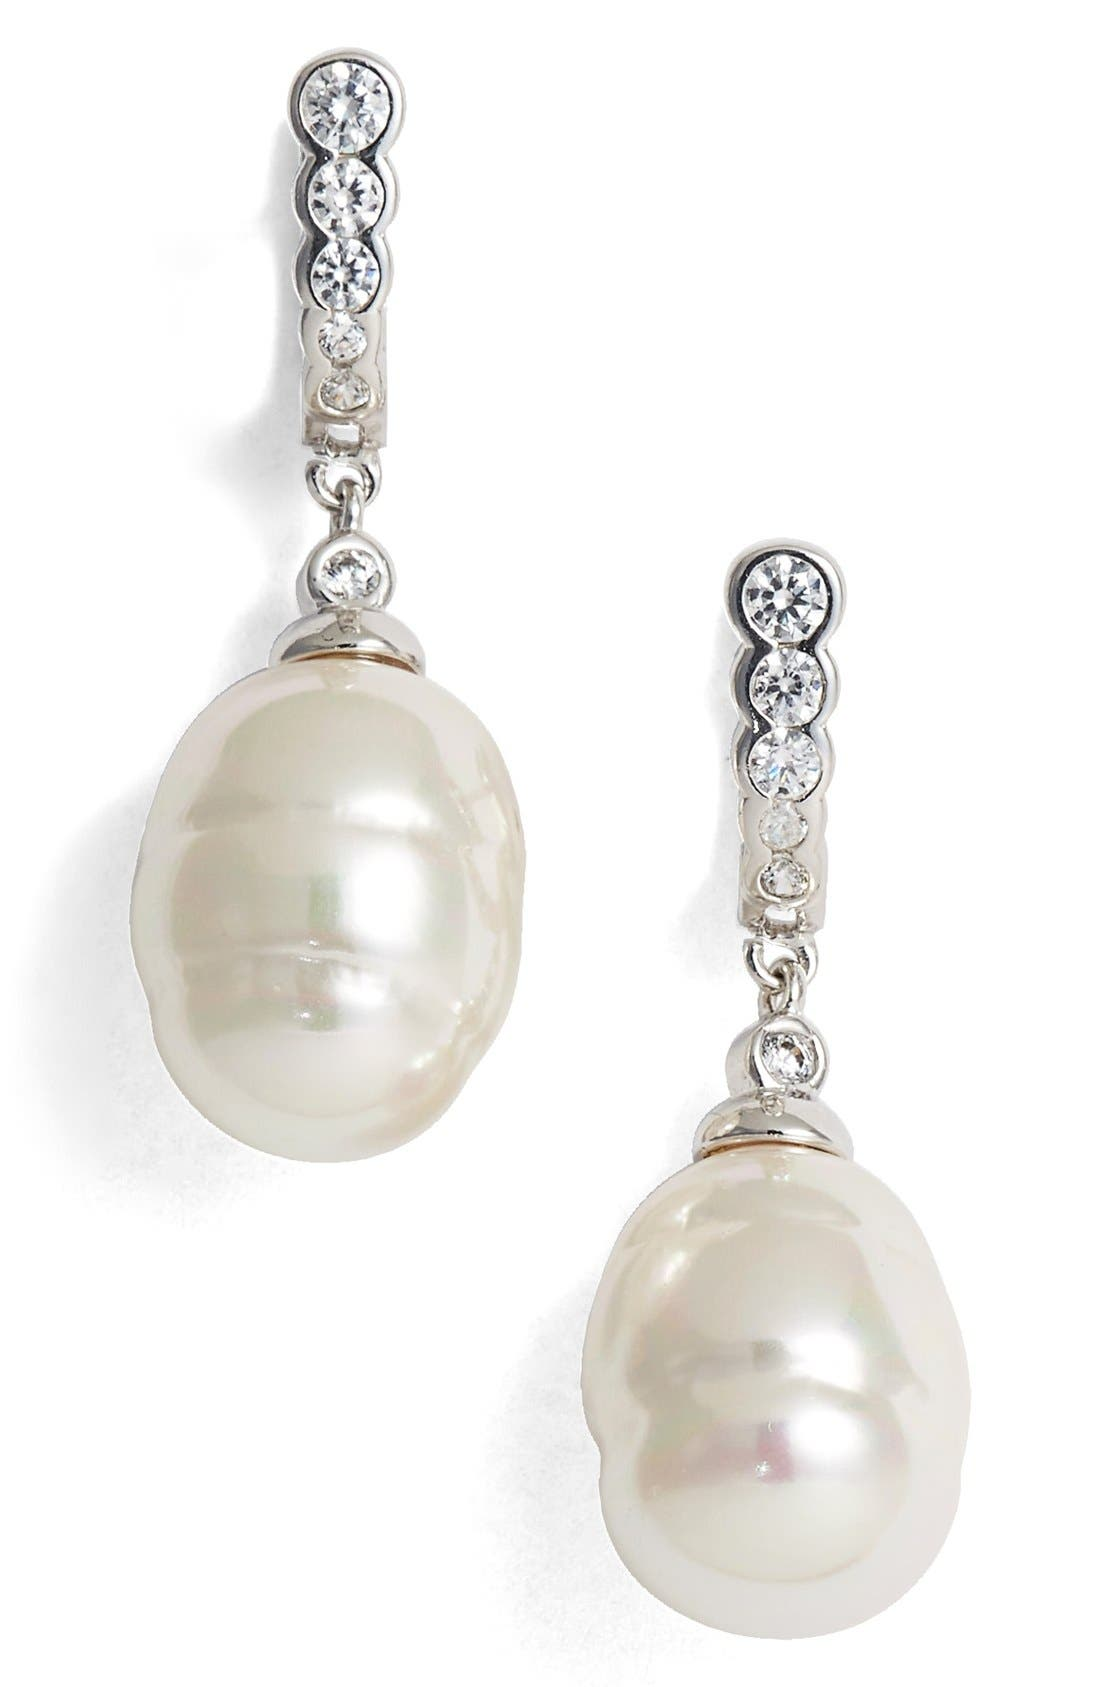 14mm Simulated Baroque Pearl & Cubic Zirconia Drop Earrings,                             Main thumbnail 1, color,                             100